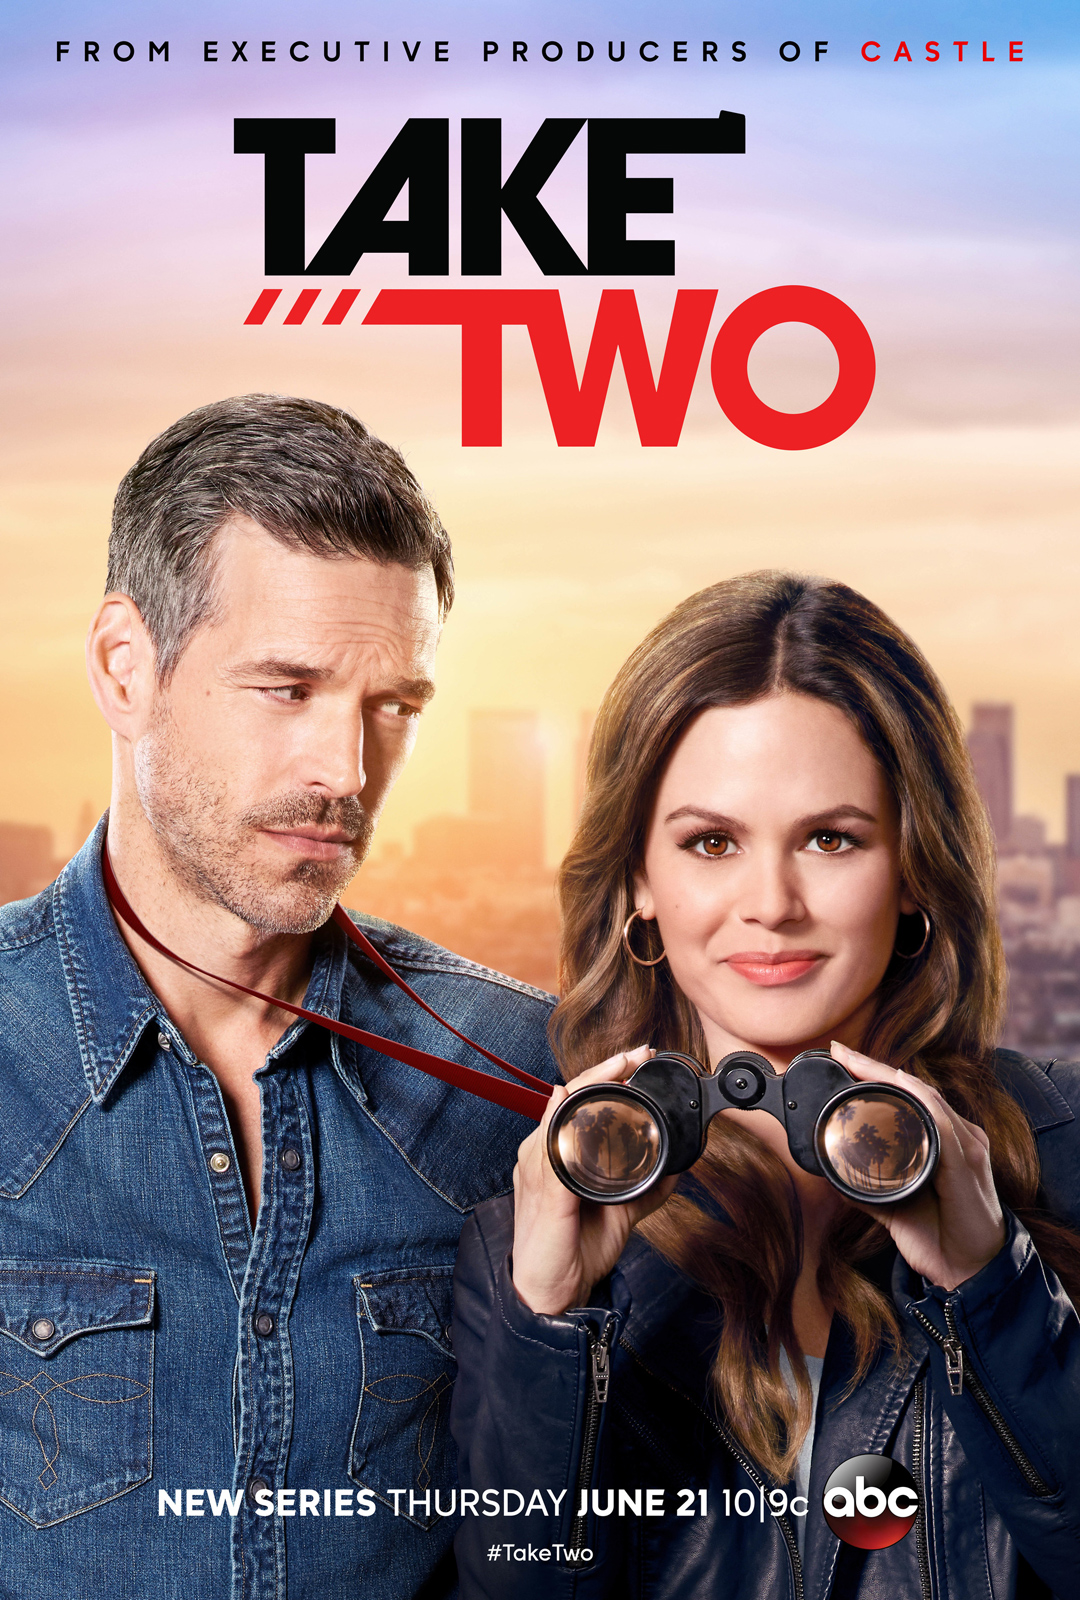 Take Two S01E01 FASTSUB VOSTFR 720p HDTV x264 WEEDS